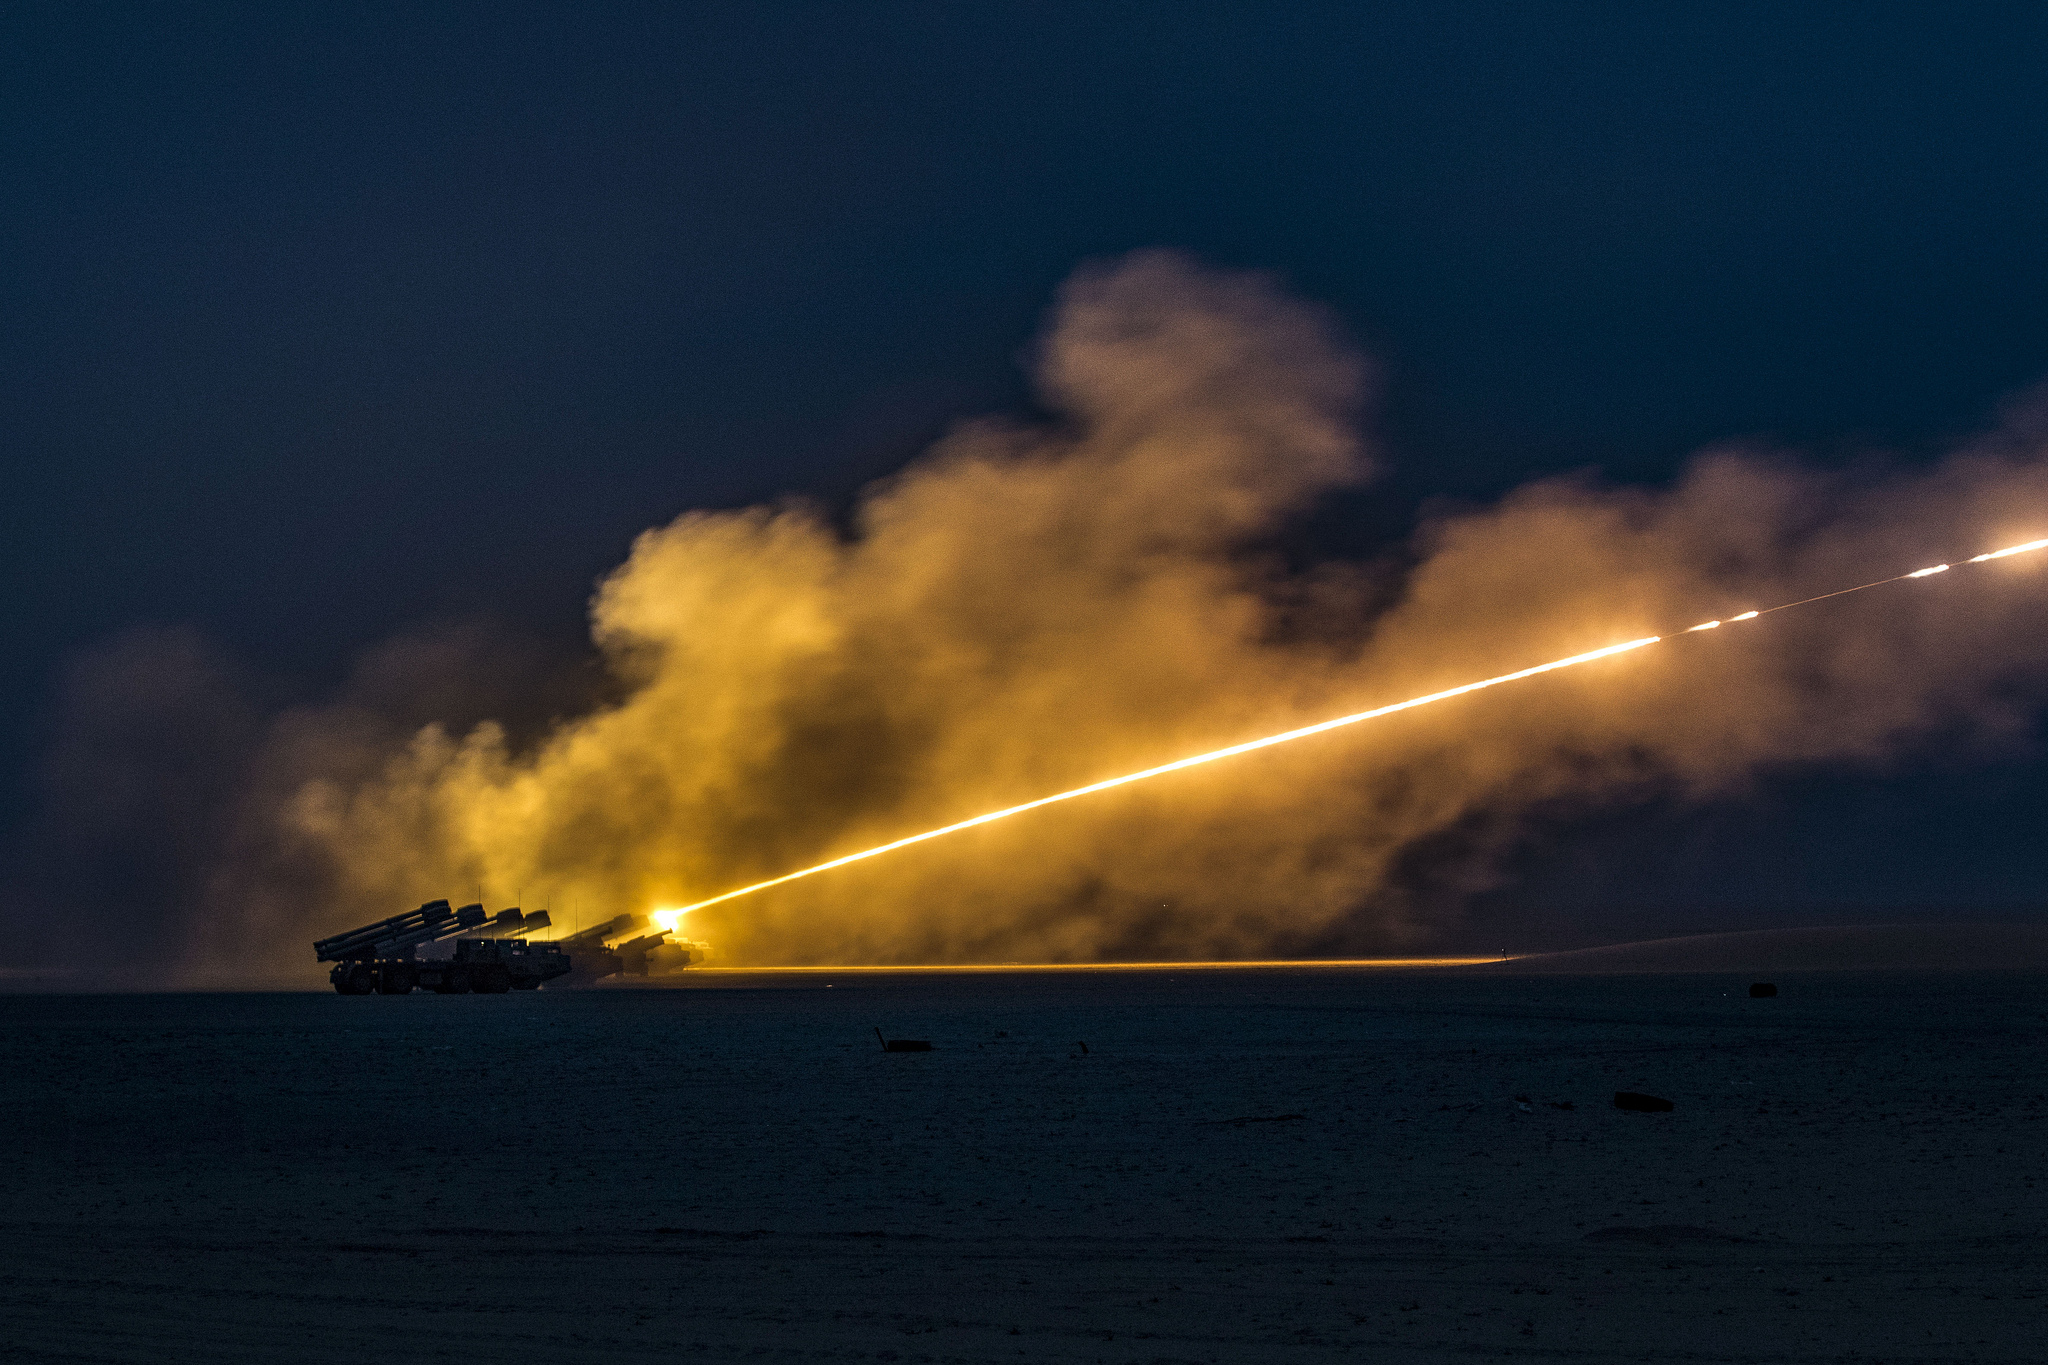 U.S. soldiers and soldiers with the Kuwait Land Forces fire their High Mobility Artillery Rocket Systems (U.S.) and BM-30 Smerch rocket systems (Kuwait) during a joint live-fire exercise on Jan. 8, 2019, near Camp Buehring, Kuwait. (Sgt. James Lefty Larimer/Army)